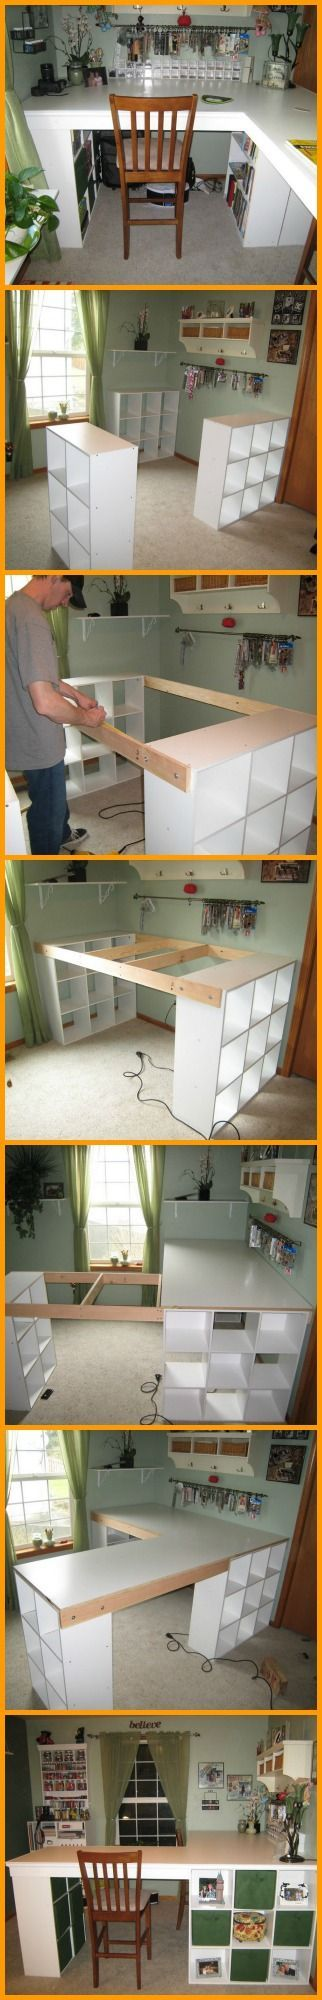 Craft projects have a tendency to take up a lot of space. This custom craft table could be the solution you're looking for. http://theownerbuildernetwork.co/bm4h: